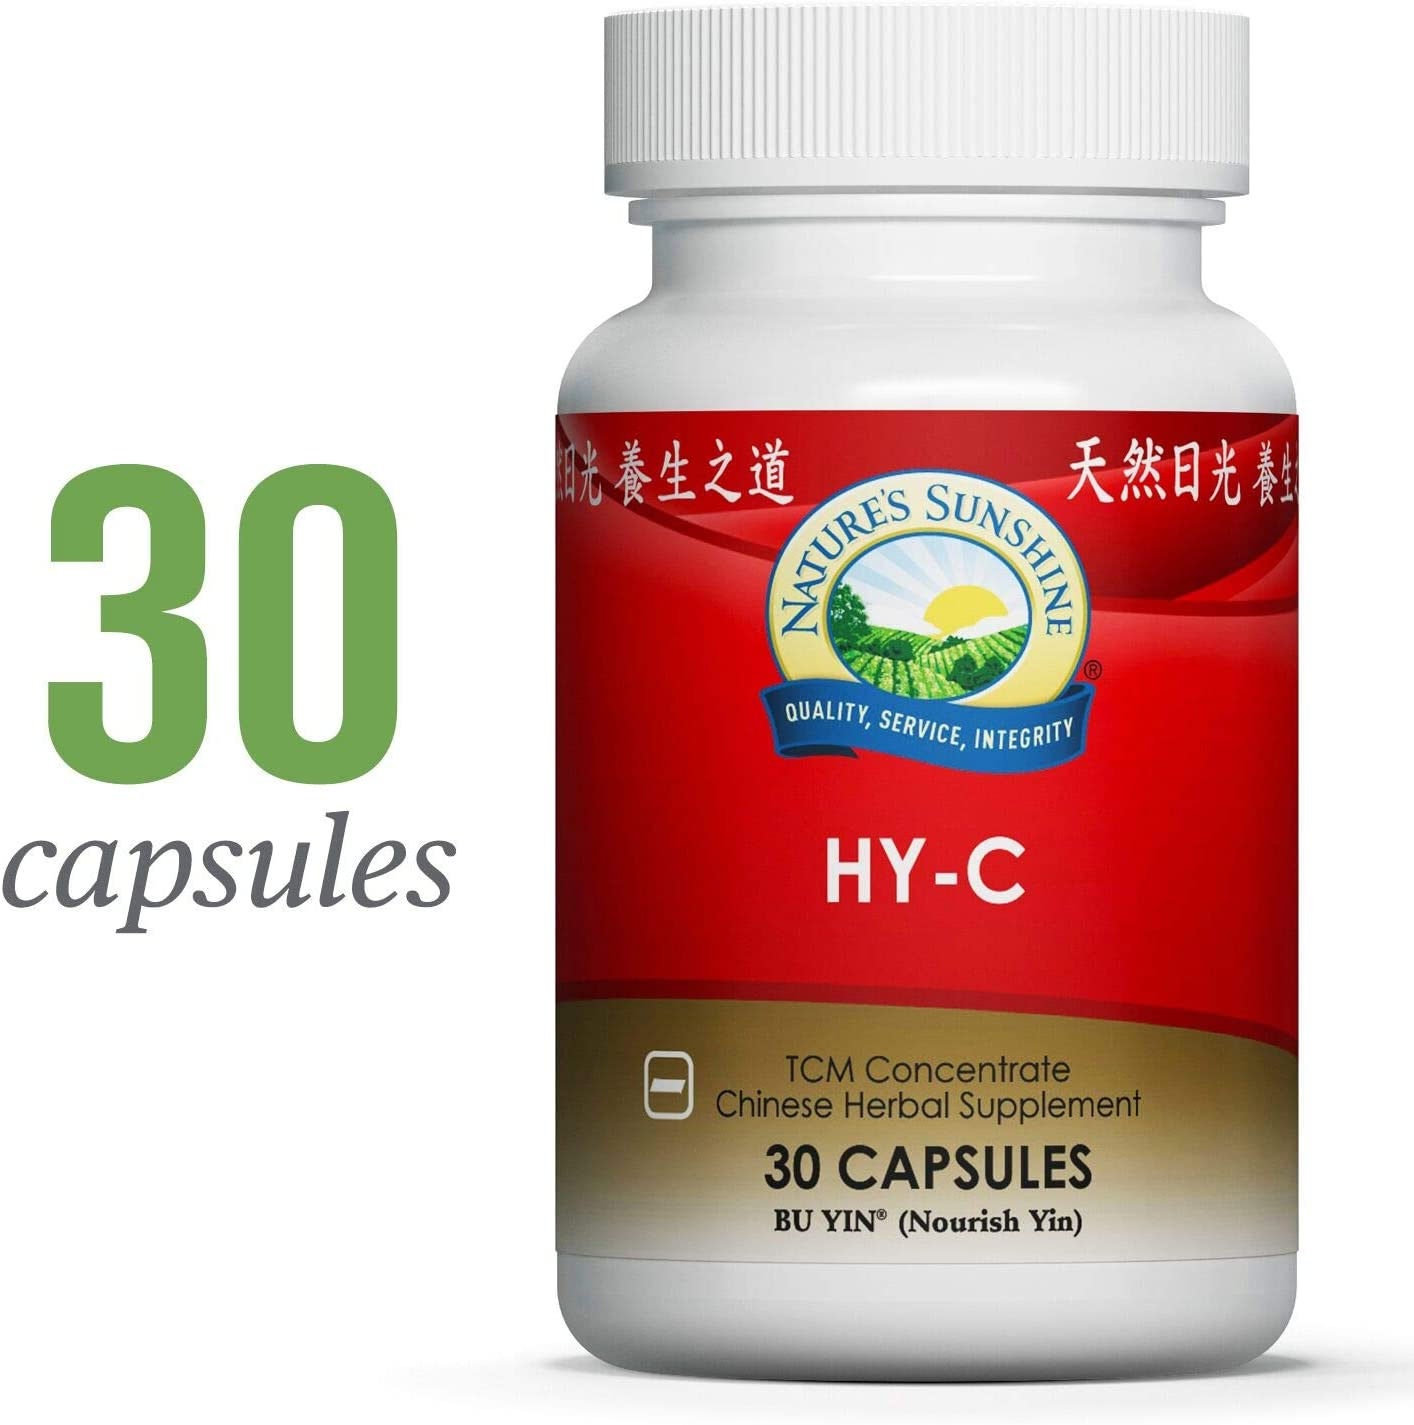 Nature s Sunshine HY-C TCM Concentrate, 30 Capsules Highly Concentrated Blend of 16 Chinese Herbs That Support The Circulatory and Glandular Systems